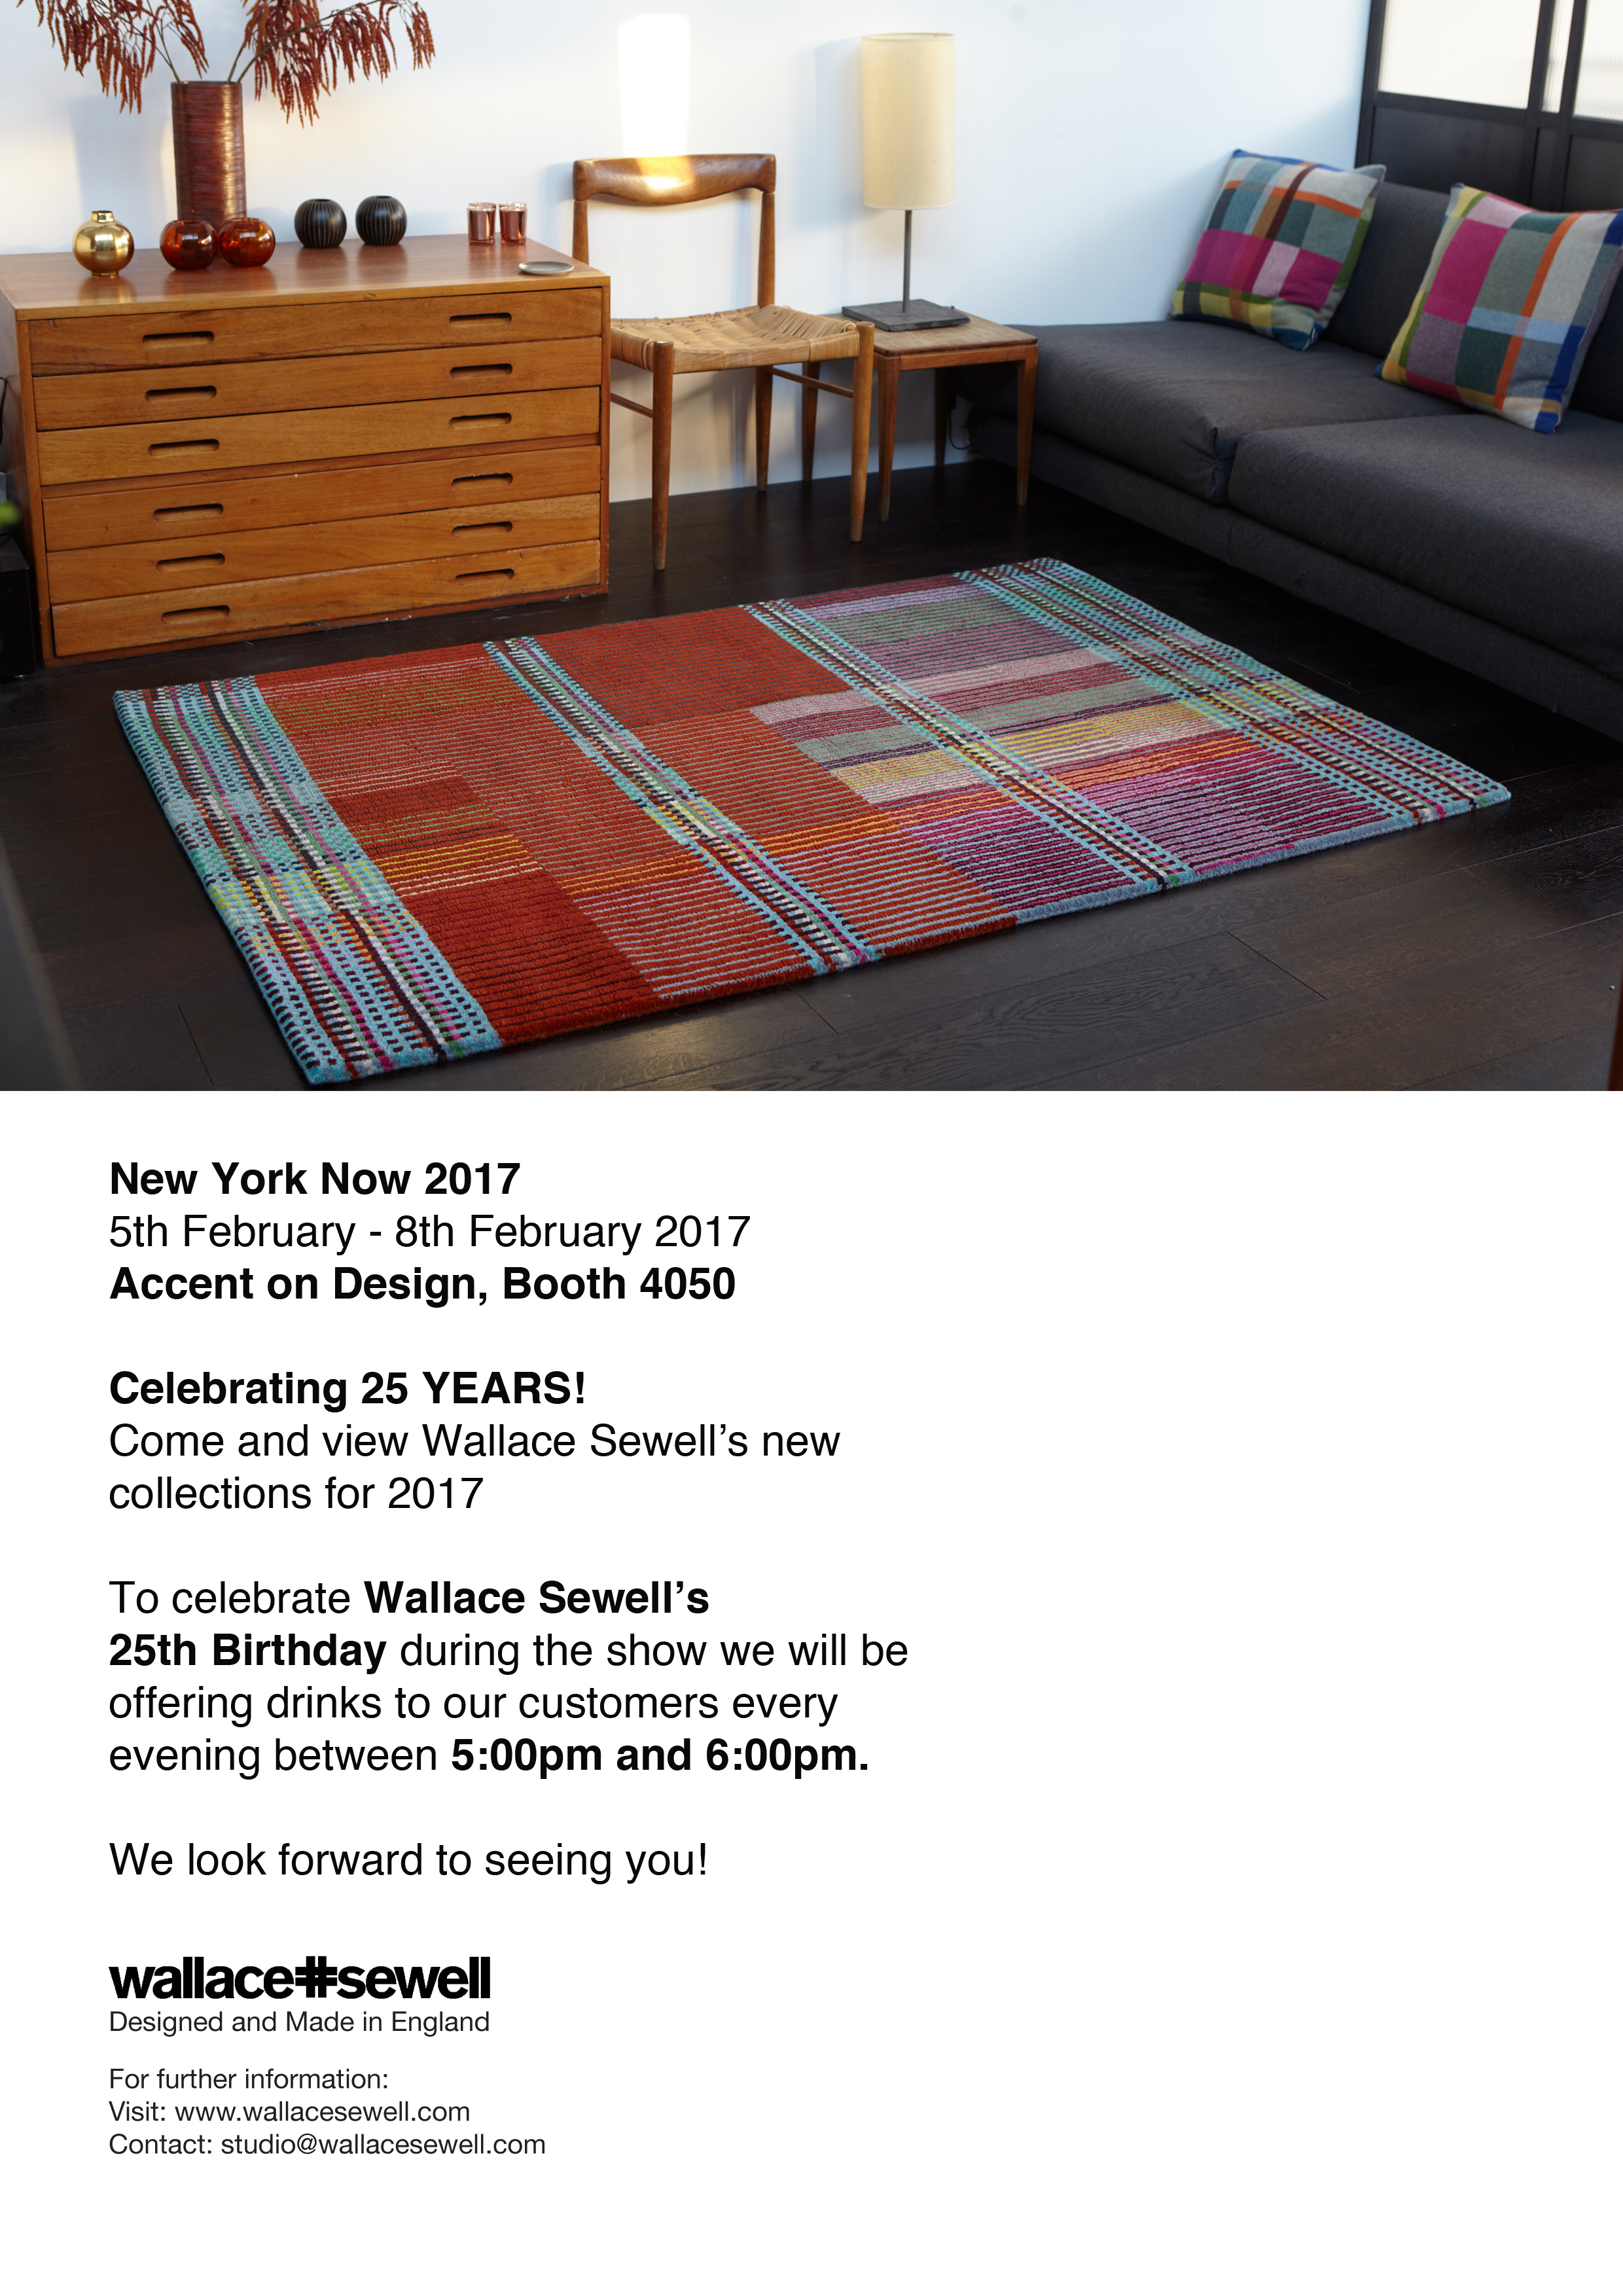 New York Now! Trade show 5th-8th February 2017